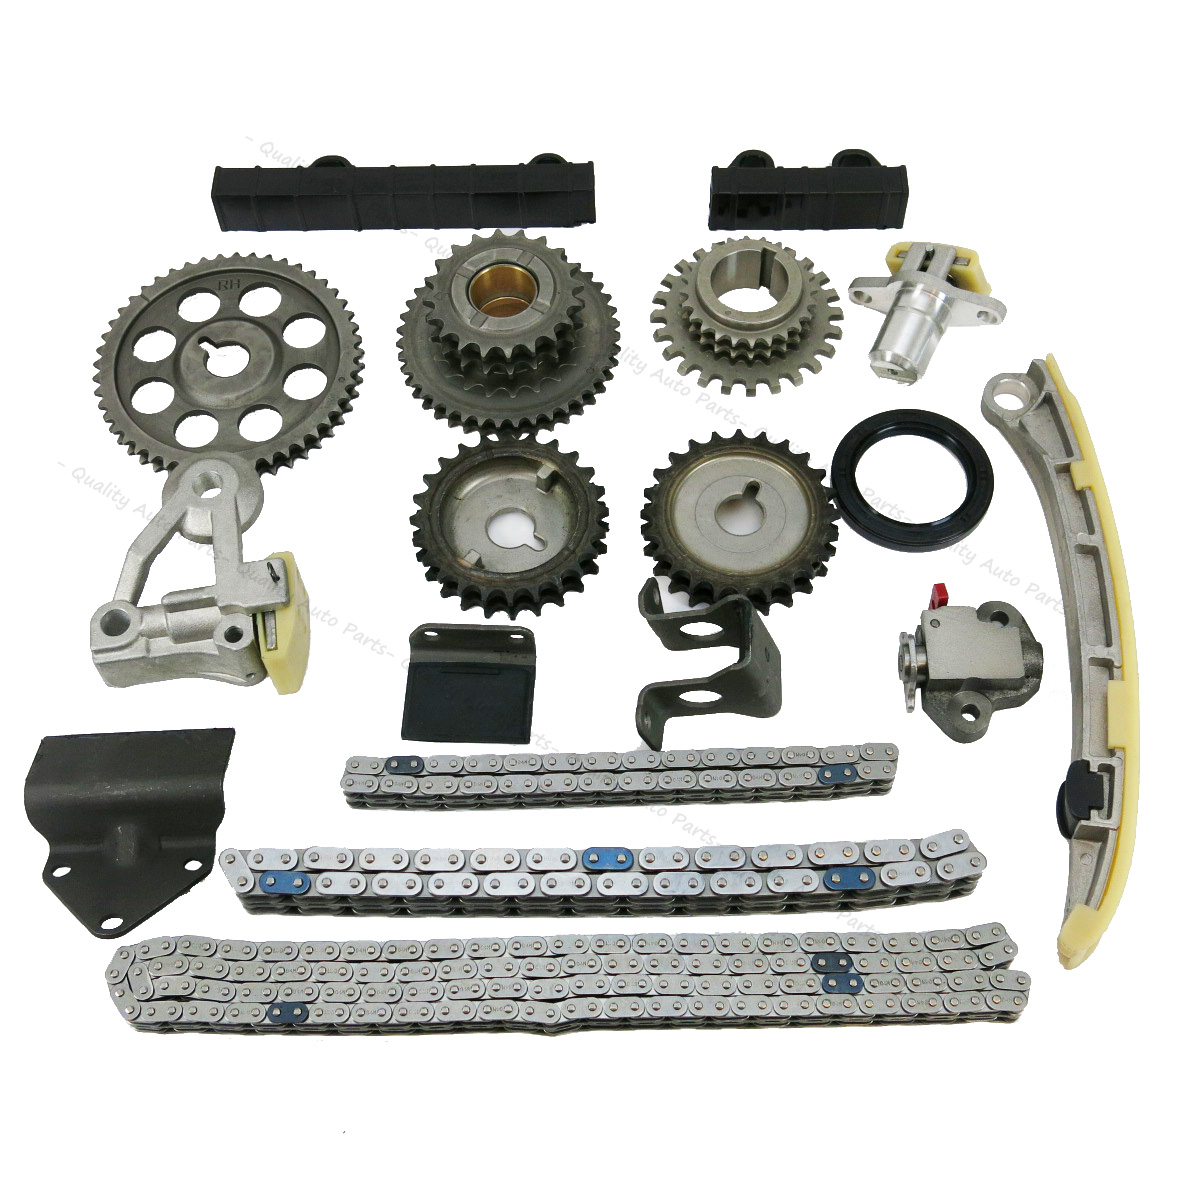 Details about FOR SUZUKI GRAND VITARA ESCUD H25A H27A H20A COMPLETE TIMING  CHAIN KIT